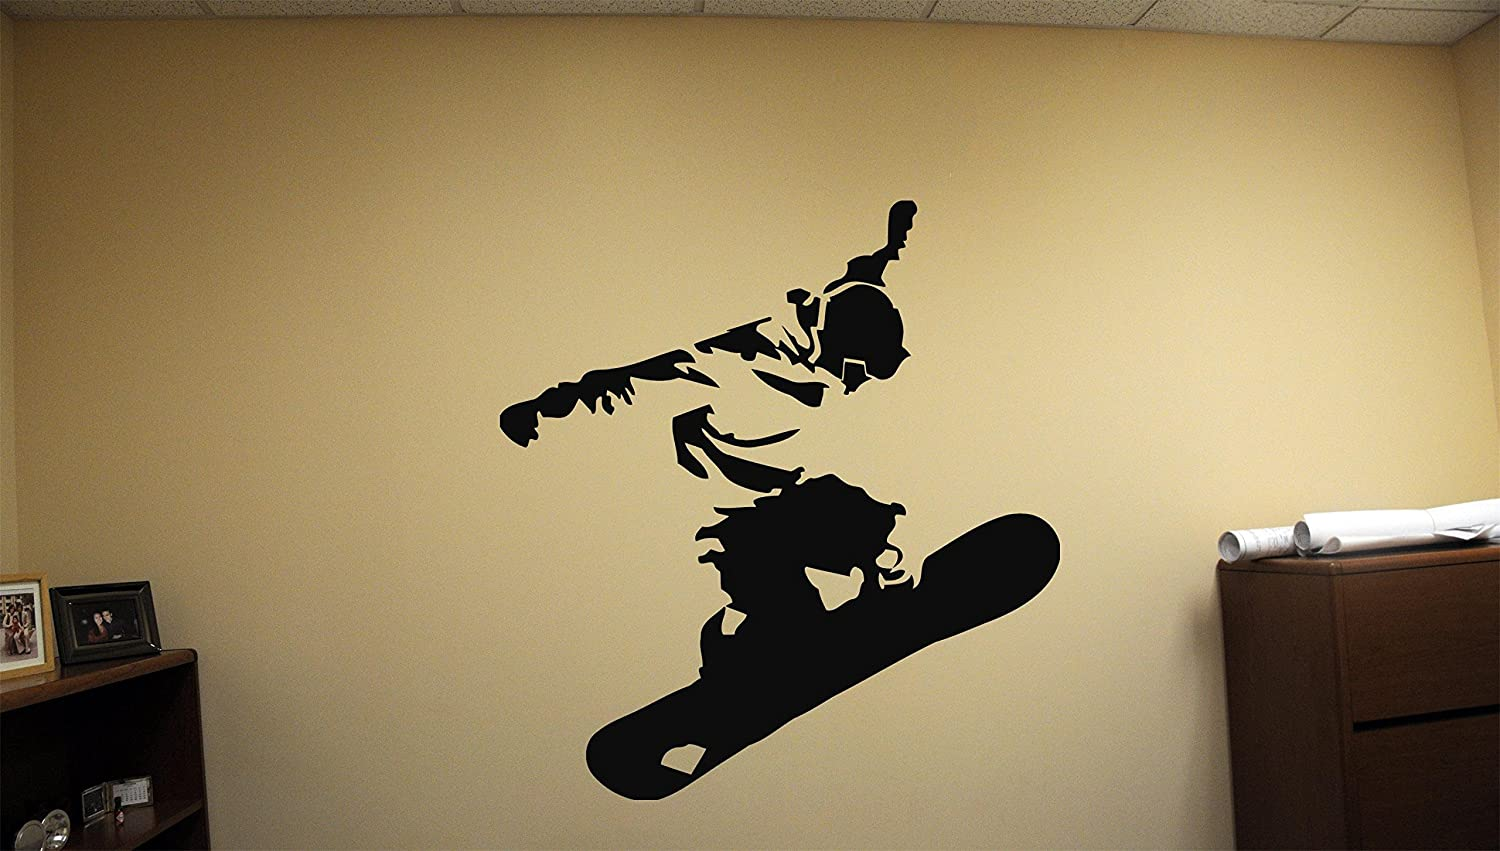 Amazon.com: Decor Snow Wall Skiing Sports Snowboarding Stickers ...